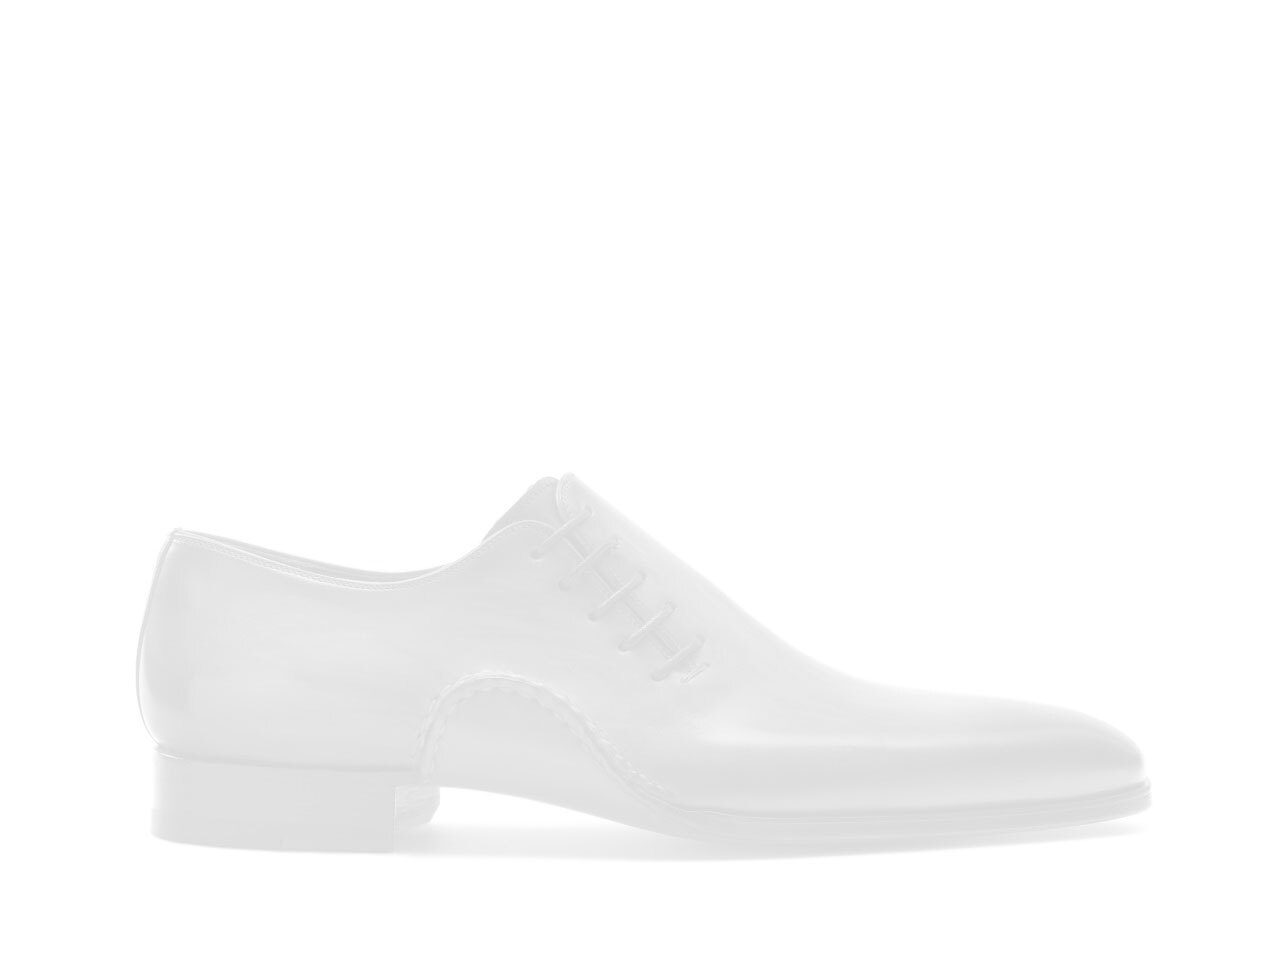 Pair of the Magnanni Capela White Men's Sneakers